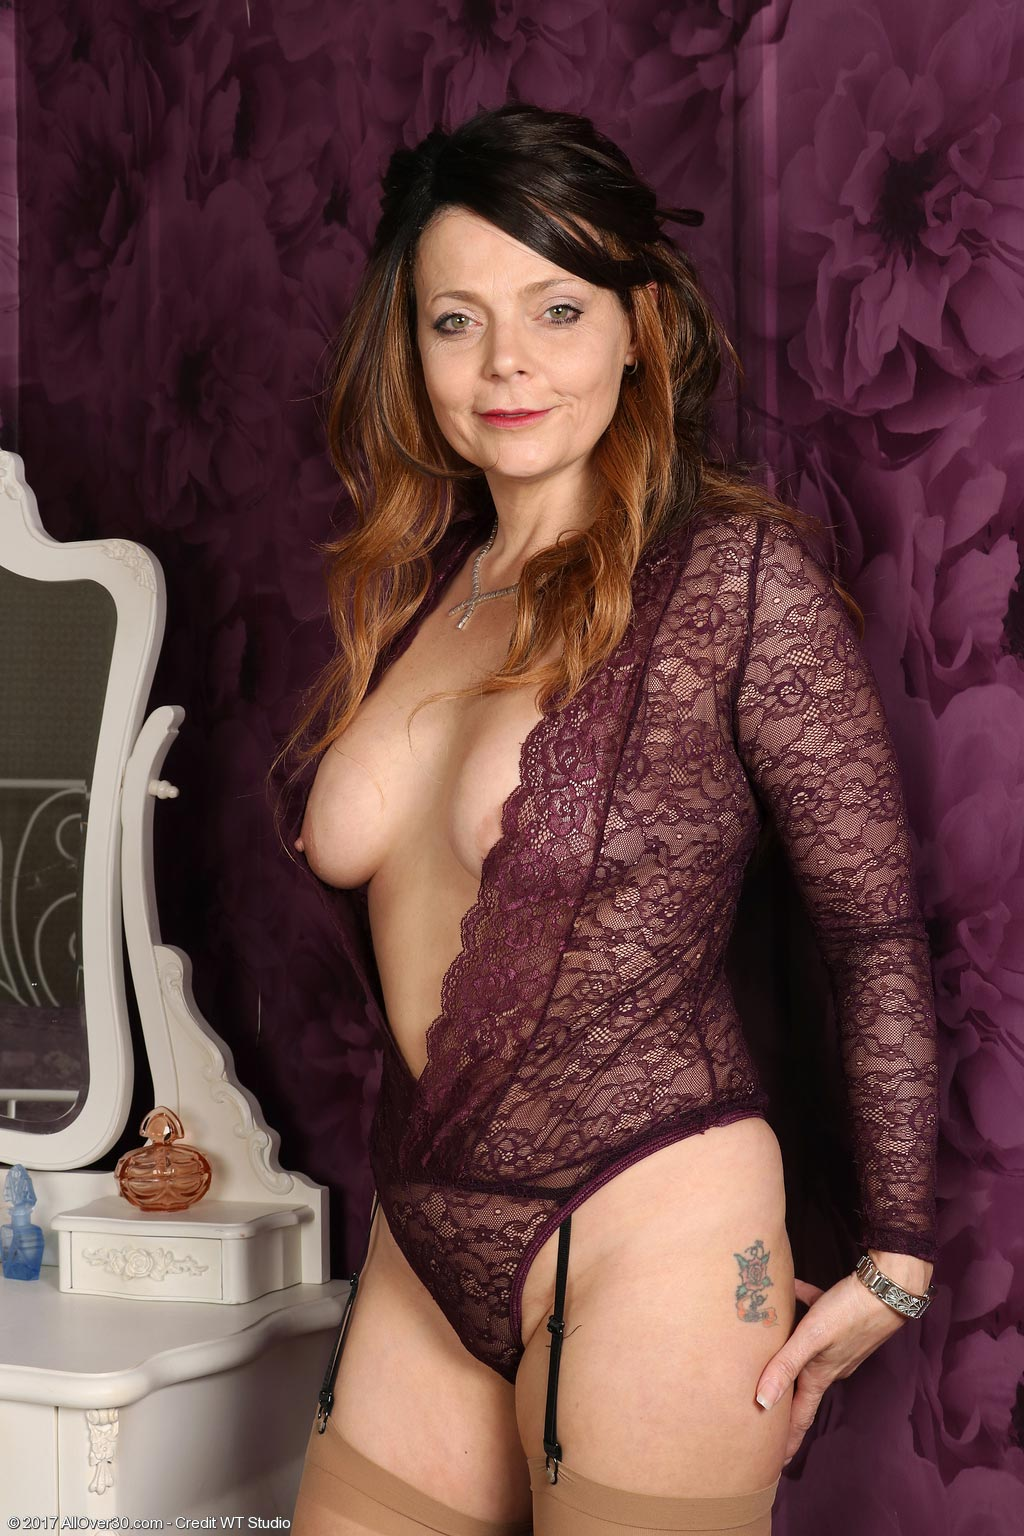 Gemma Gold Milf In Nylon Stockings-4179